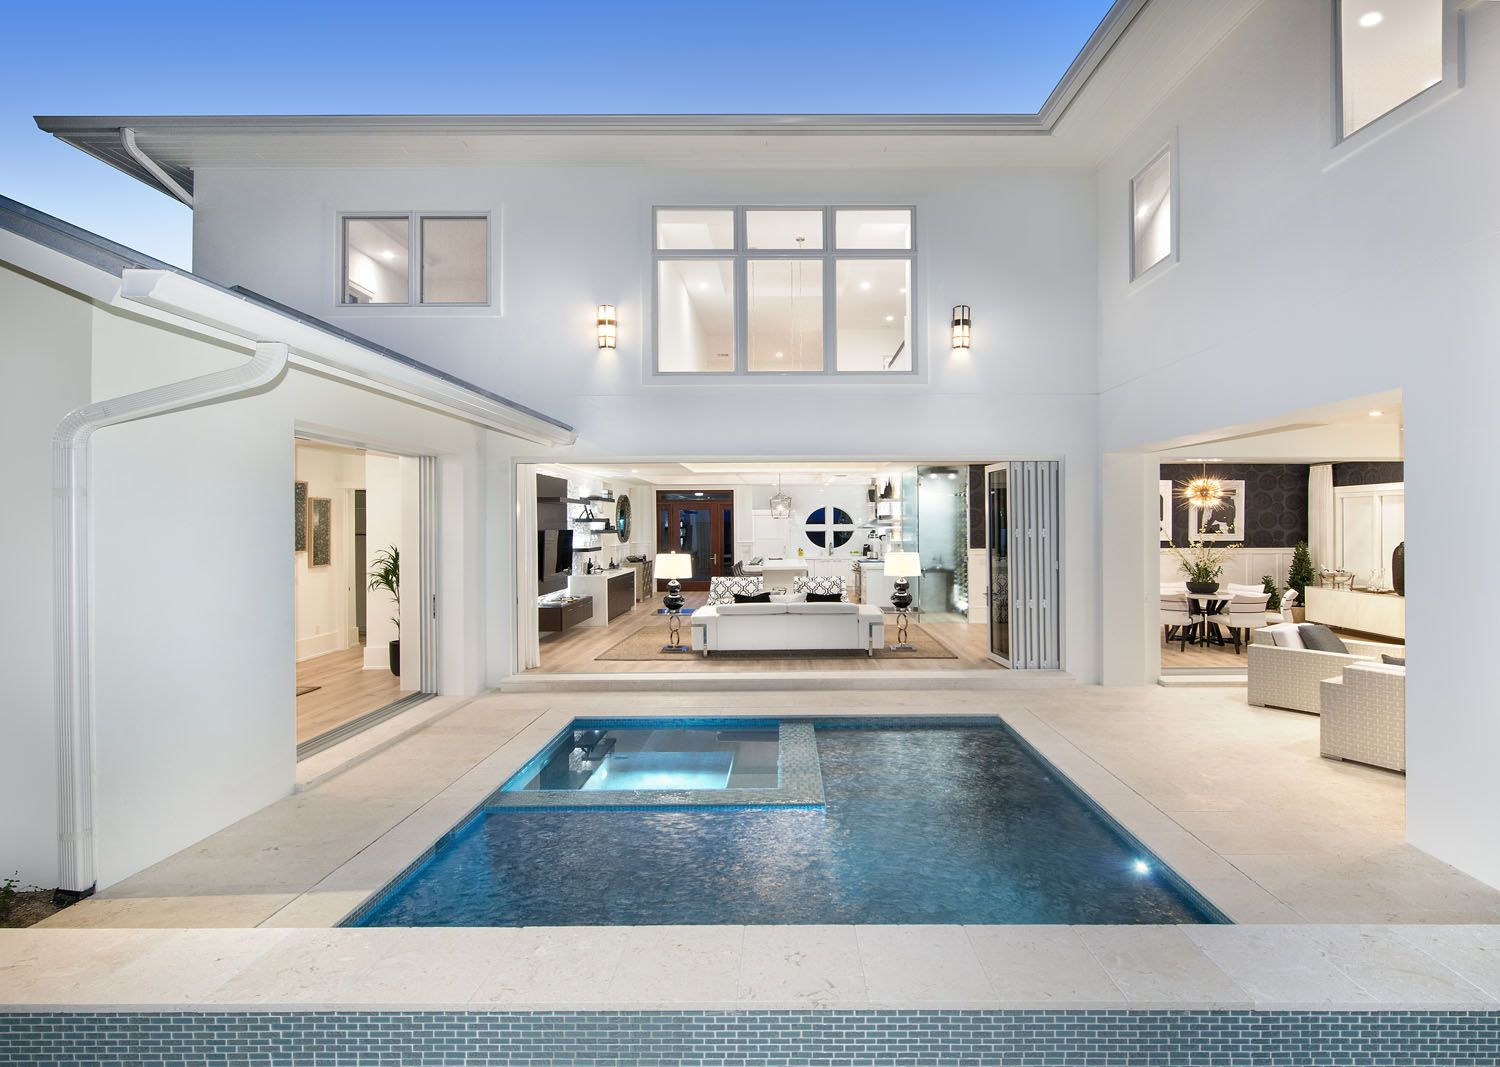 This Is Kind Of Similar To The L Shape House Plans I Like With A Small Pool I Like The Folding Doors House Residential House Plans